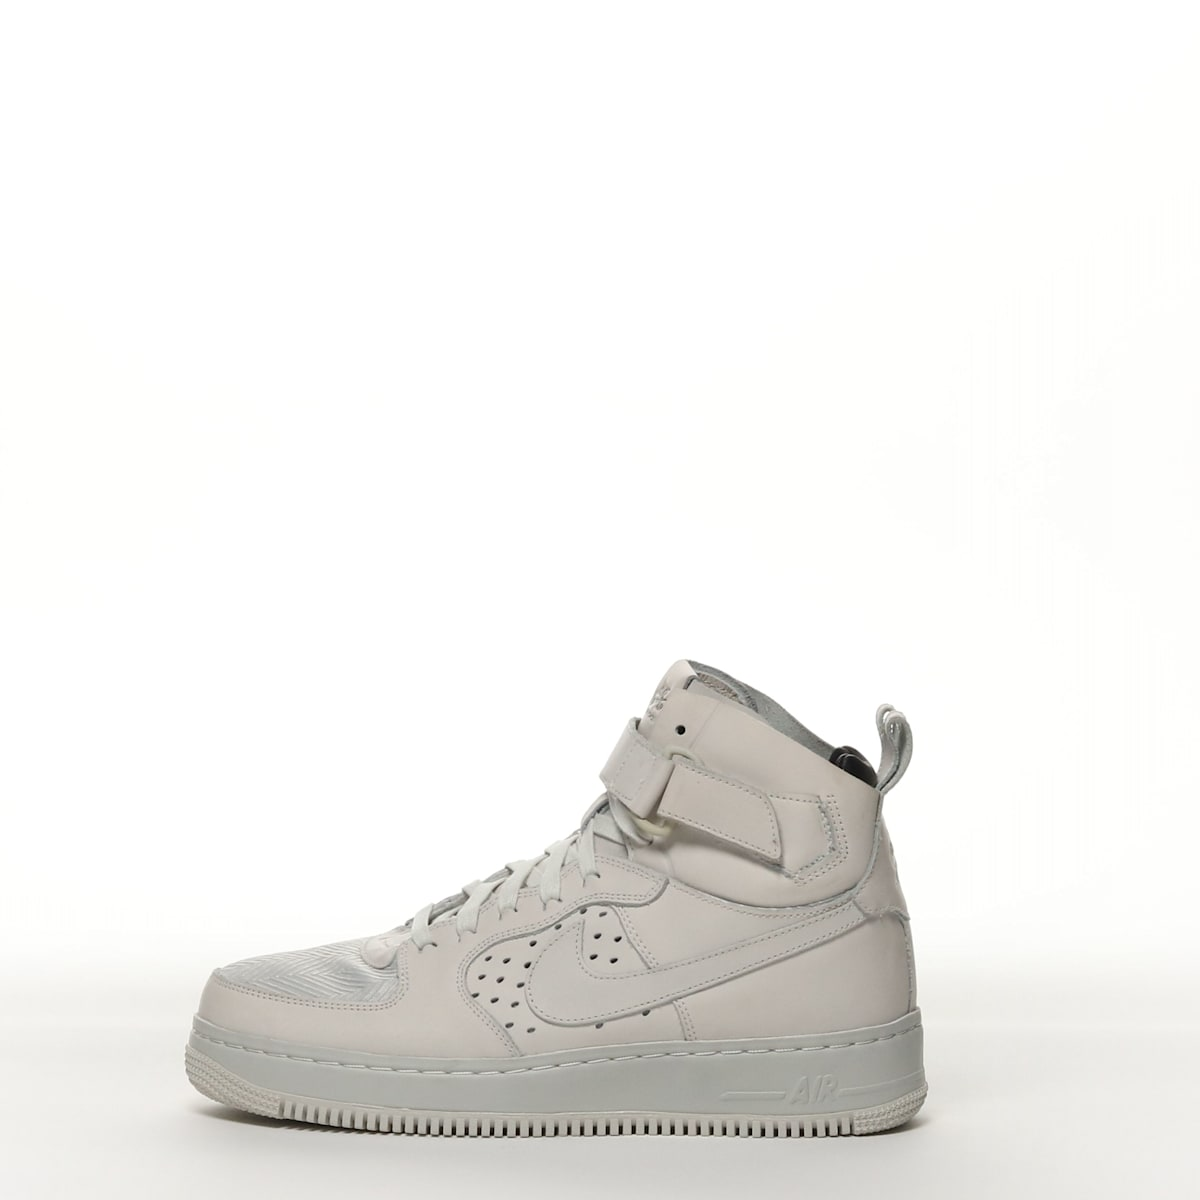 new style 38707 ff0b7 ... Nikelab air force 1 high cmft tc sp.  Actual Shoe